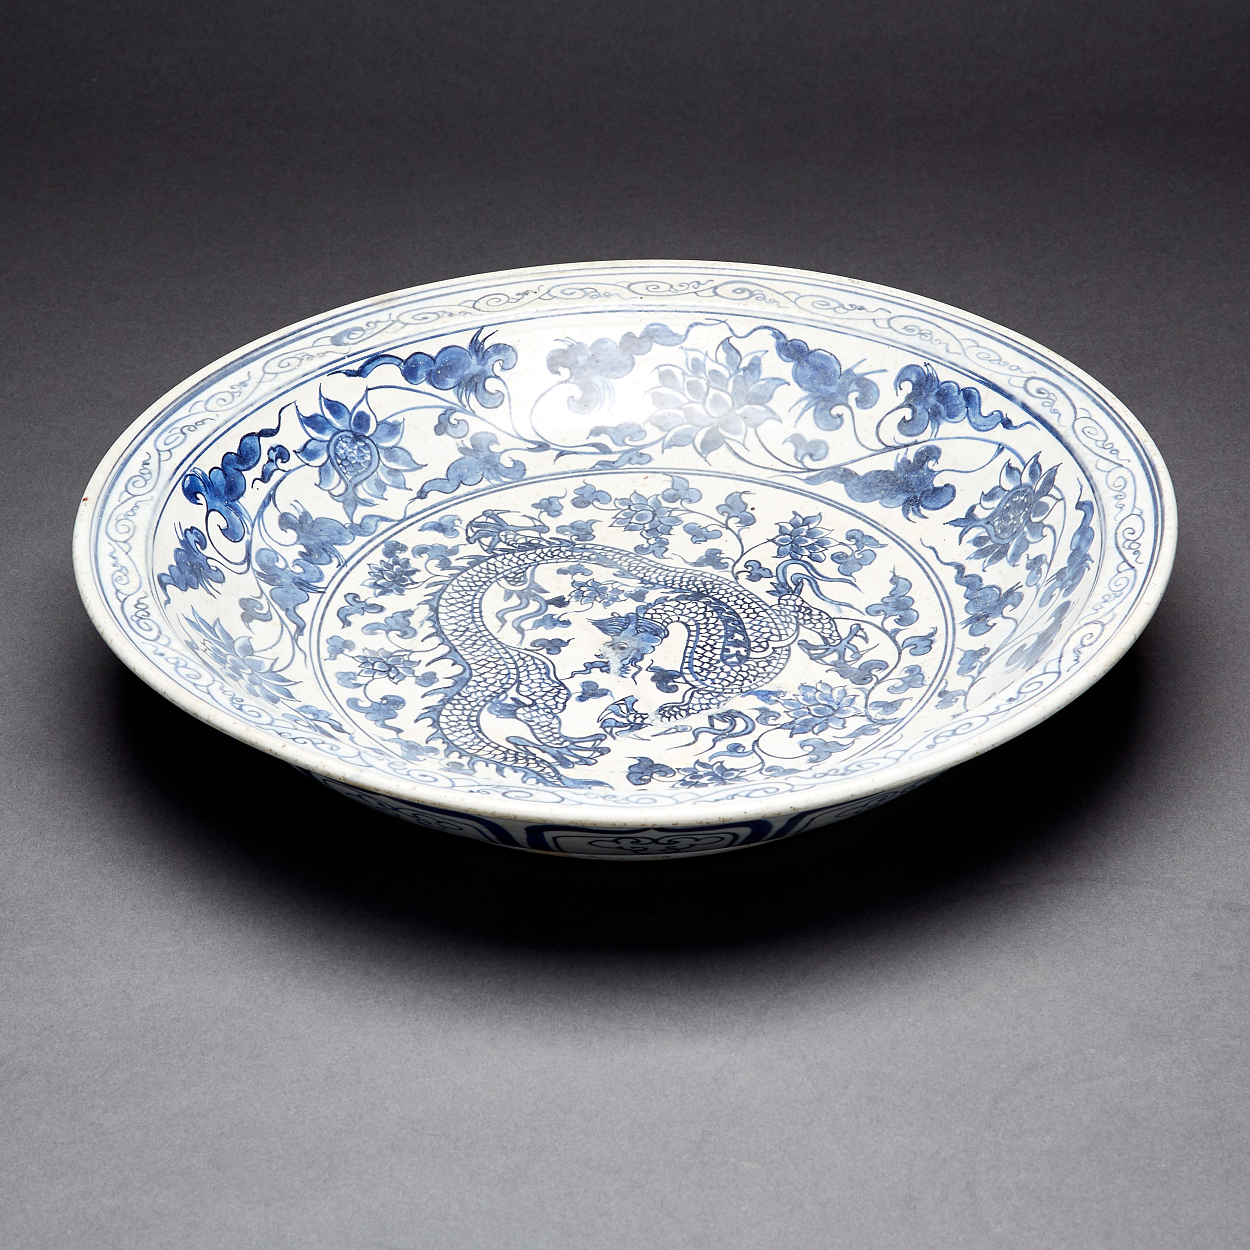 A Blue and White 'Dragon and Lotus' Charger